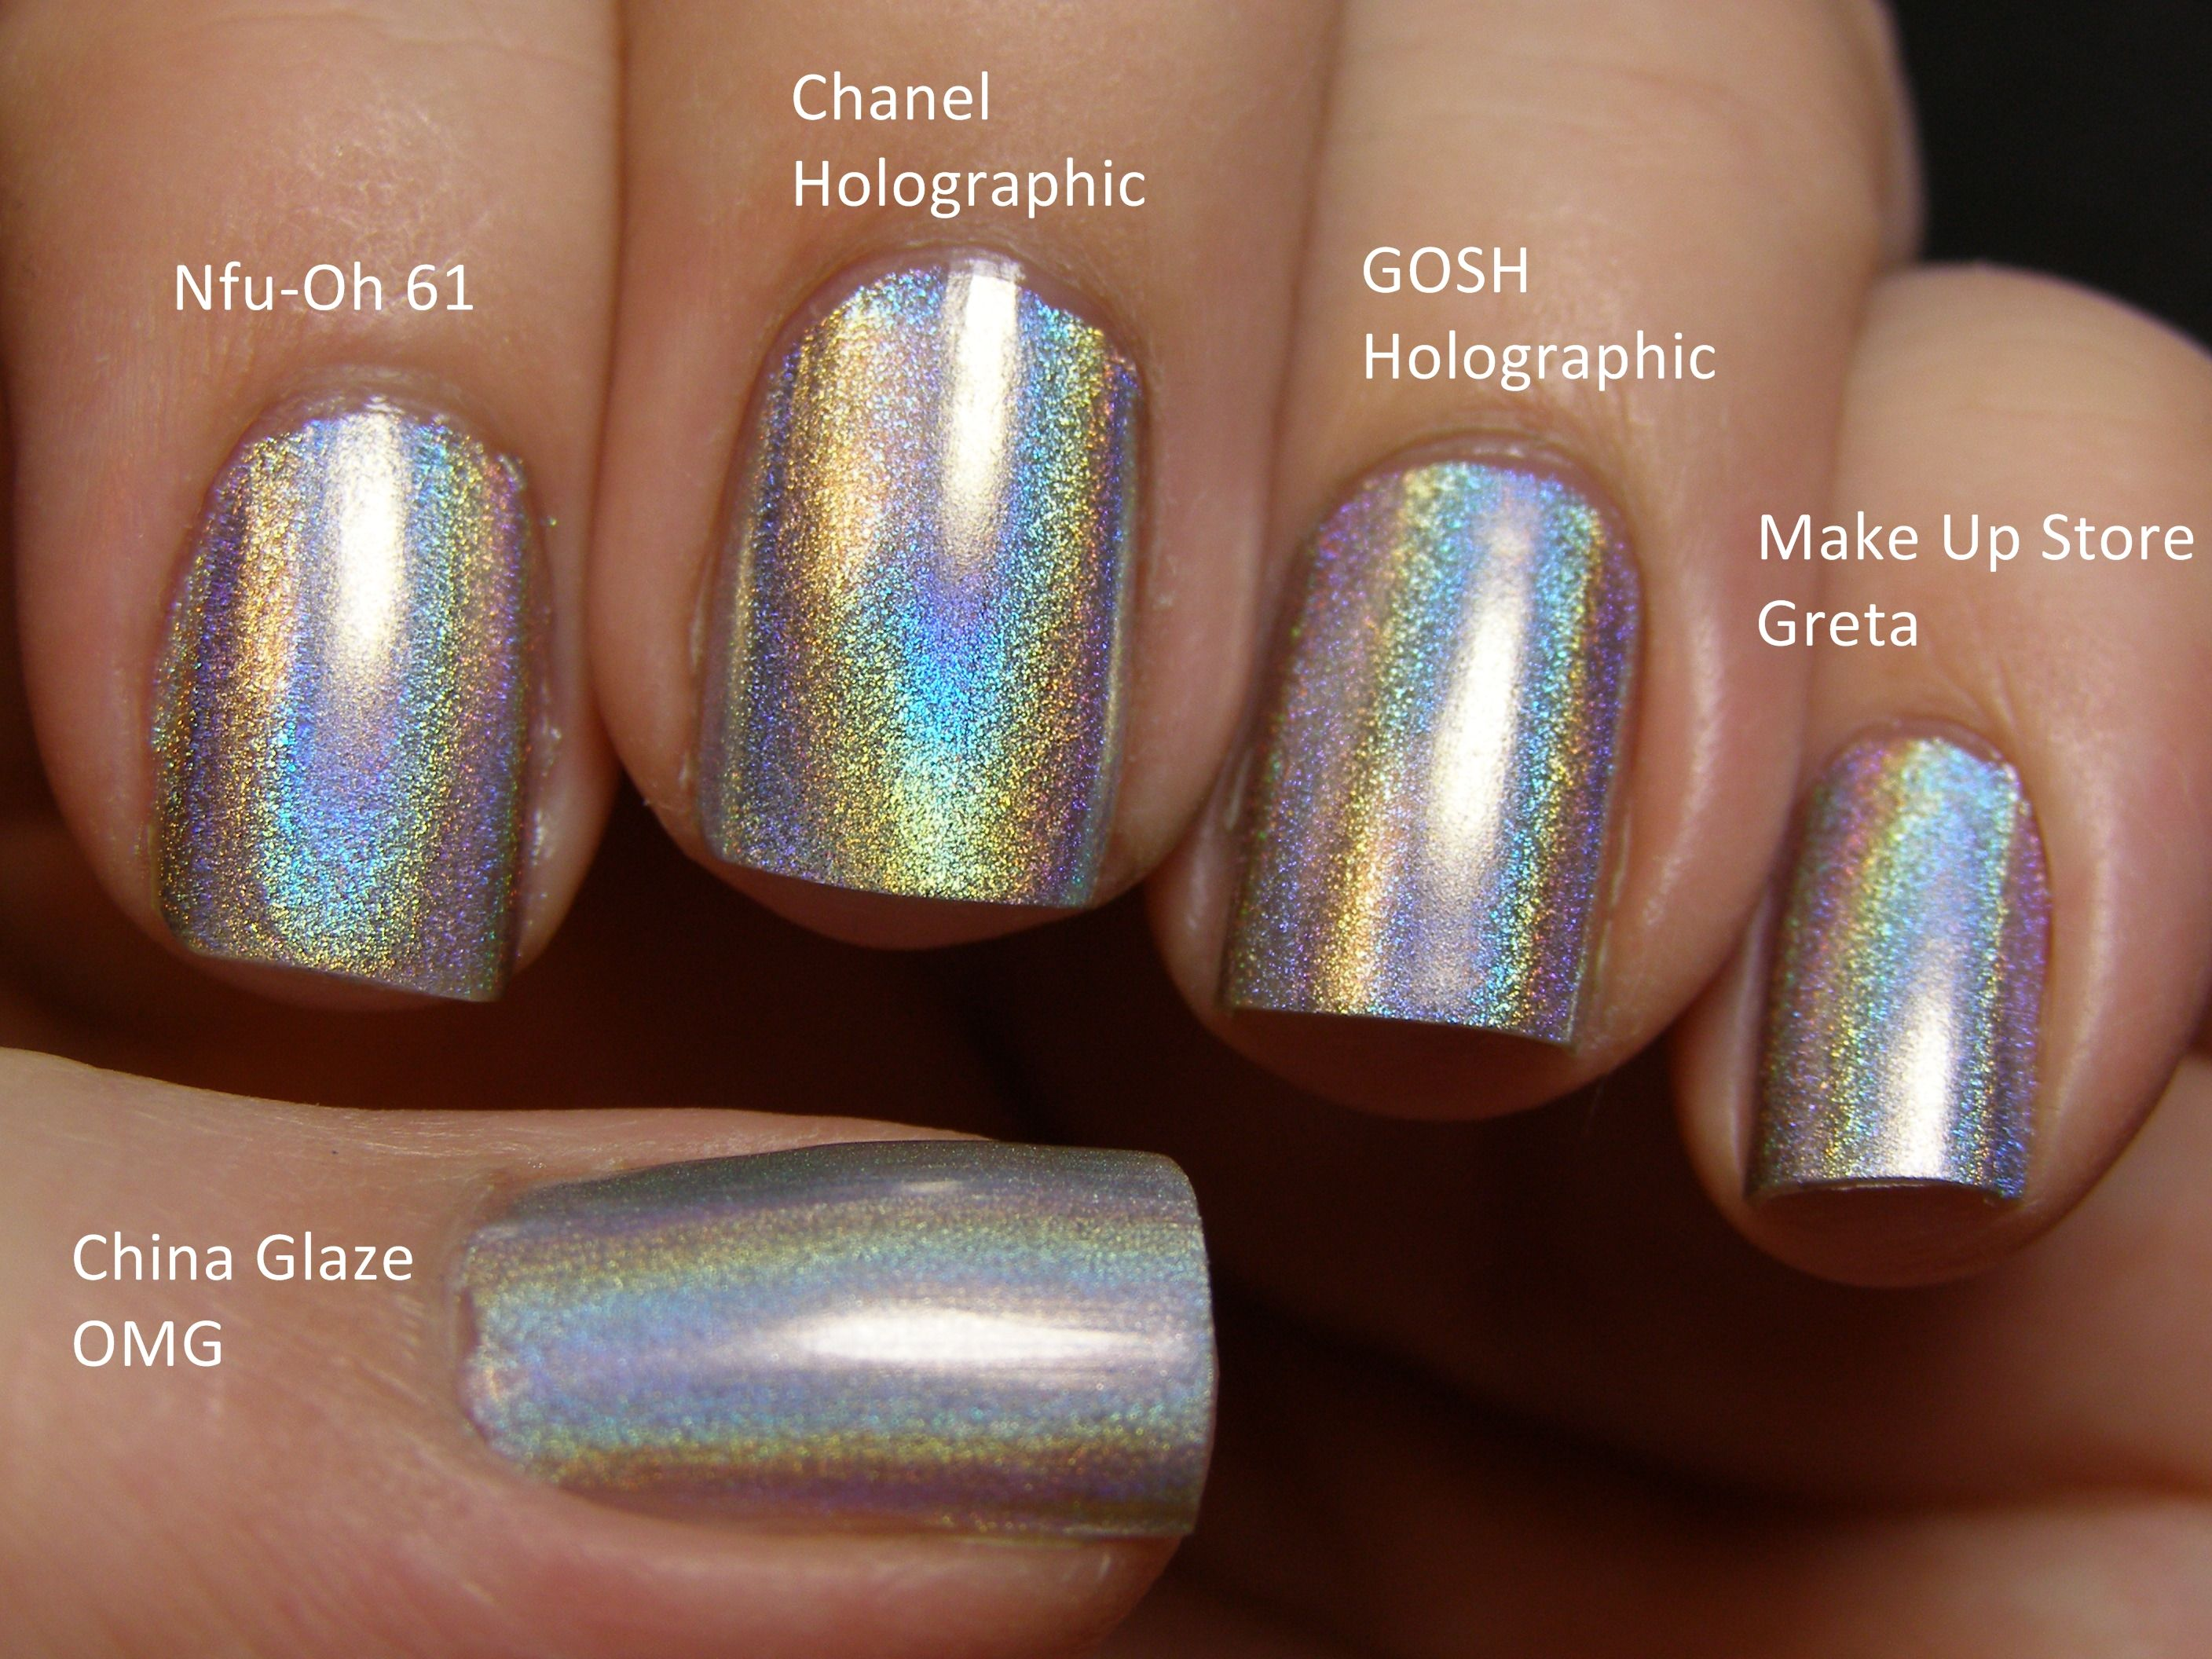 Comparing Holographic Nail Polishes I Have Been Looking For A Good One Forever